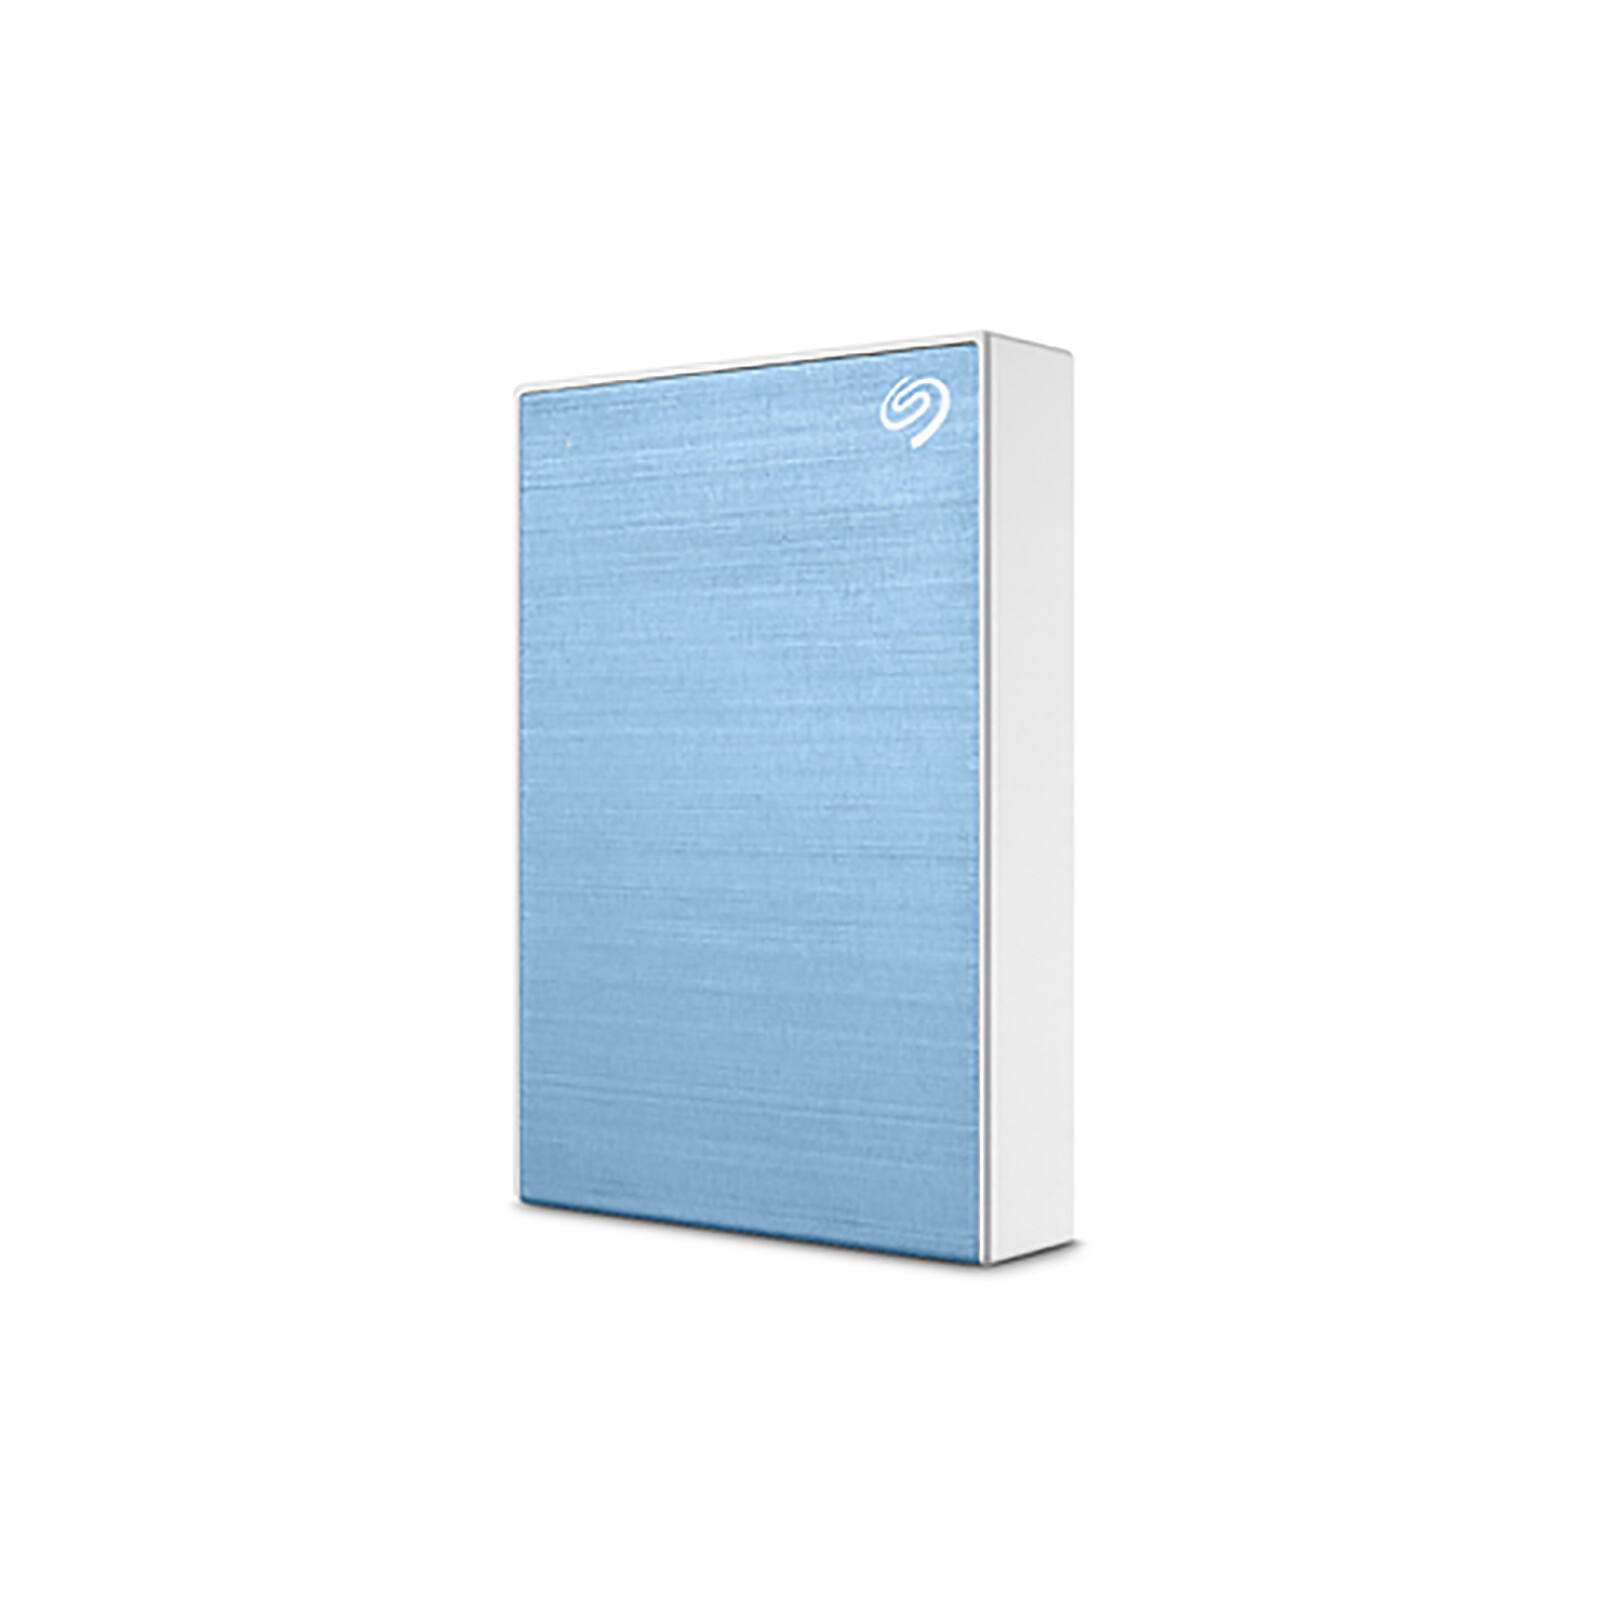 Seagate One Touch 2TB USB 3 light blue